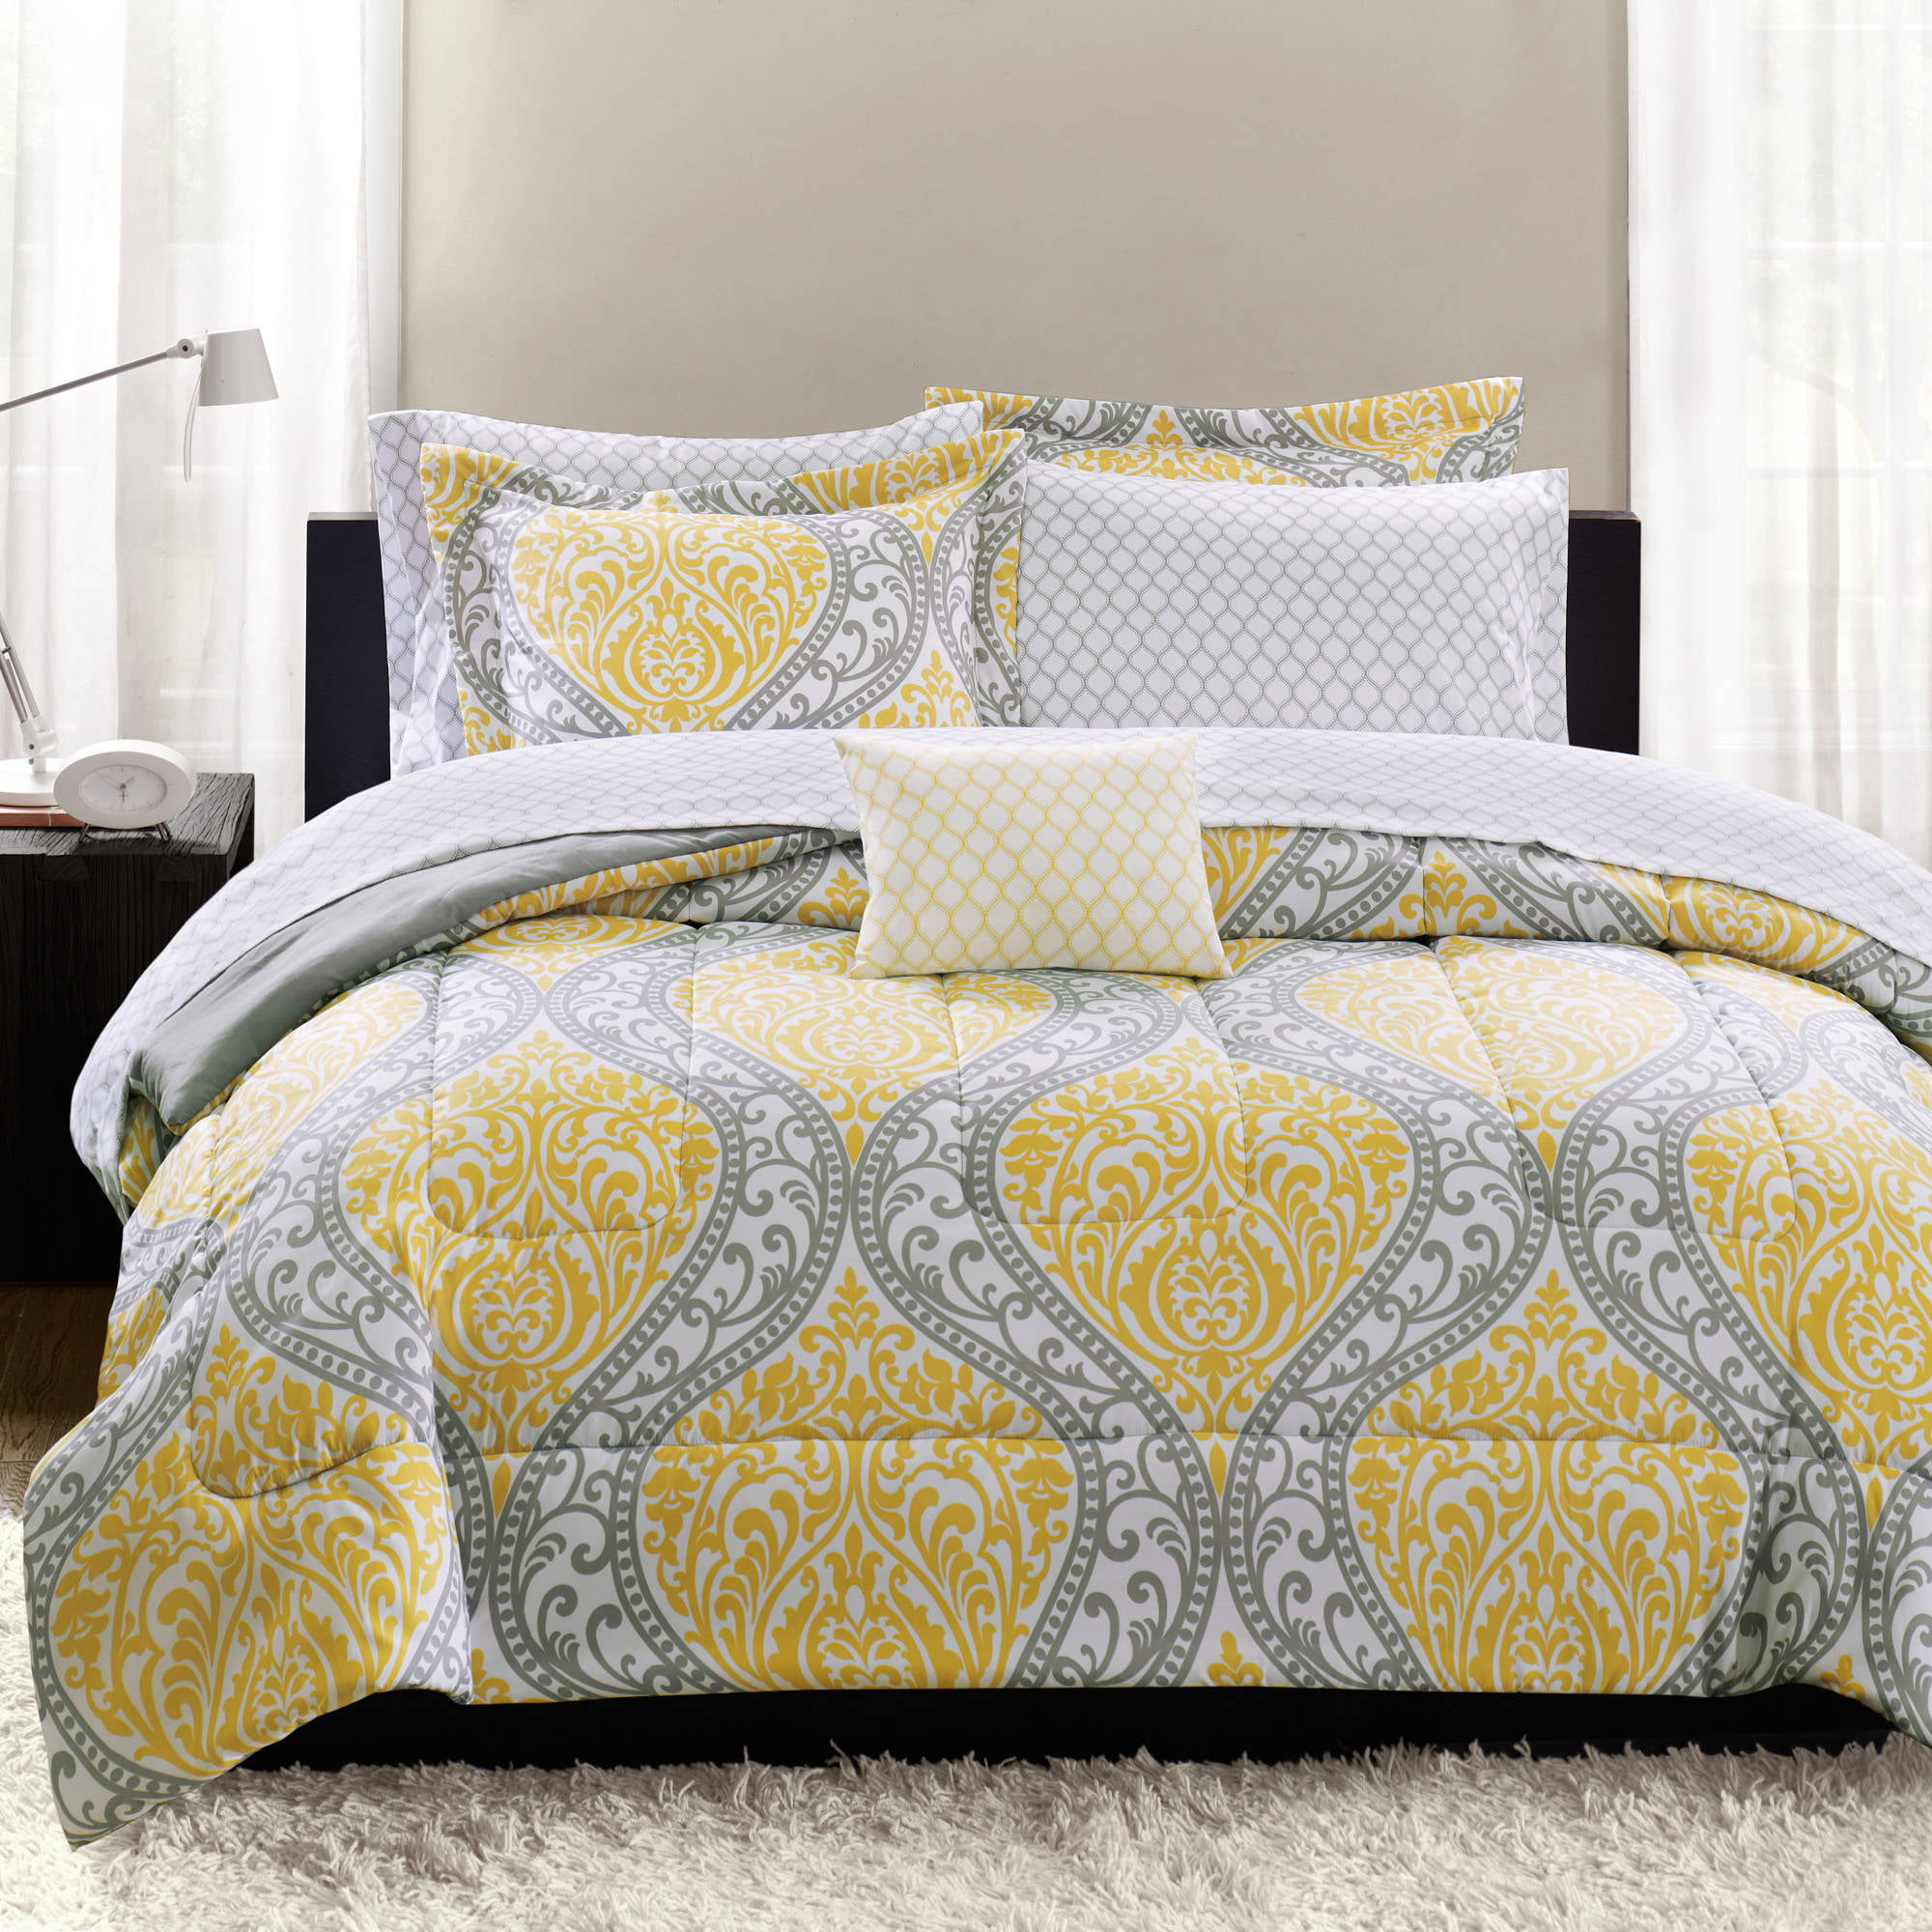 Bedding sets for teenage girls walmart - Mainstays Yellow Damask Coordinated Bedding Set Bed In A Bag Walmart Com